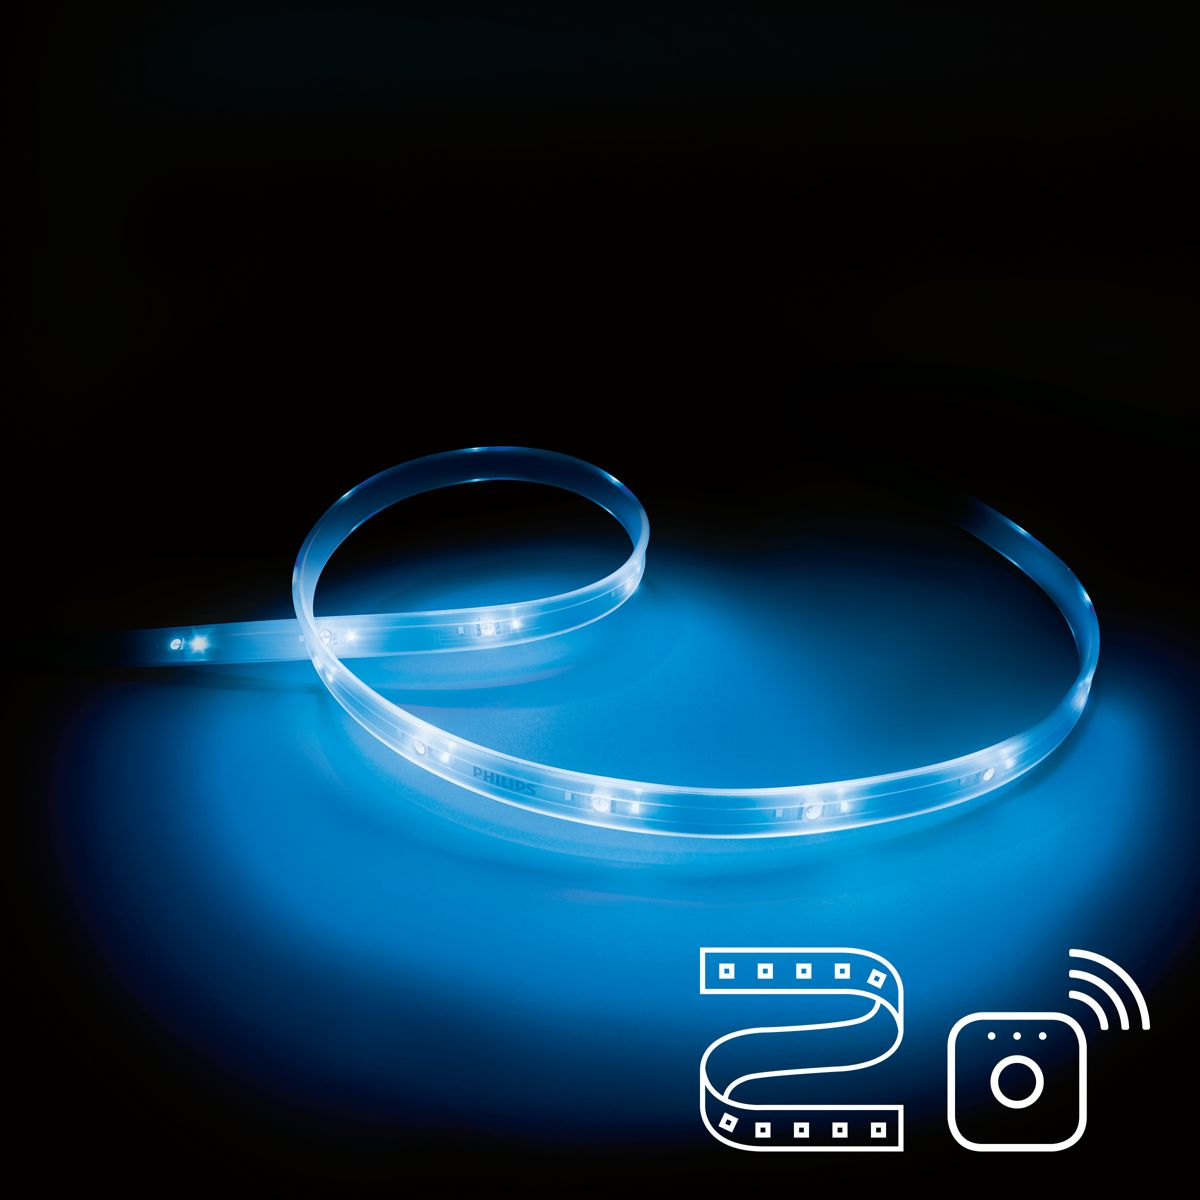 Vereist een Philips Hue Lightstrip Plus en een Philips Hue Bridge